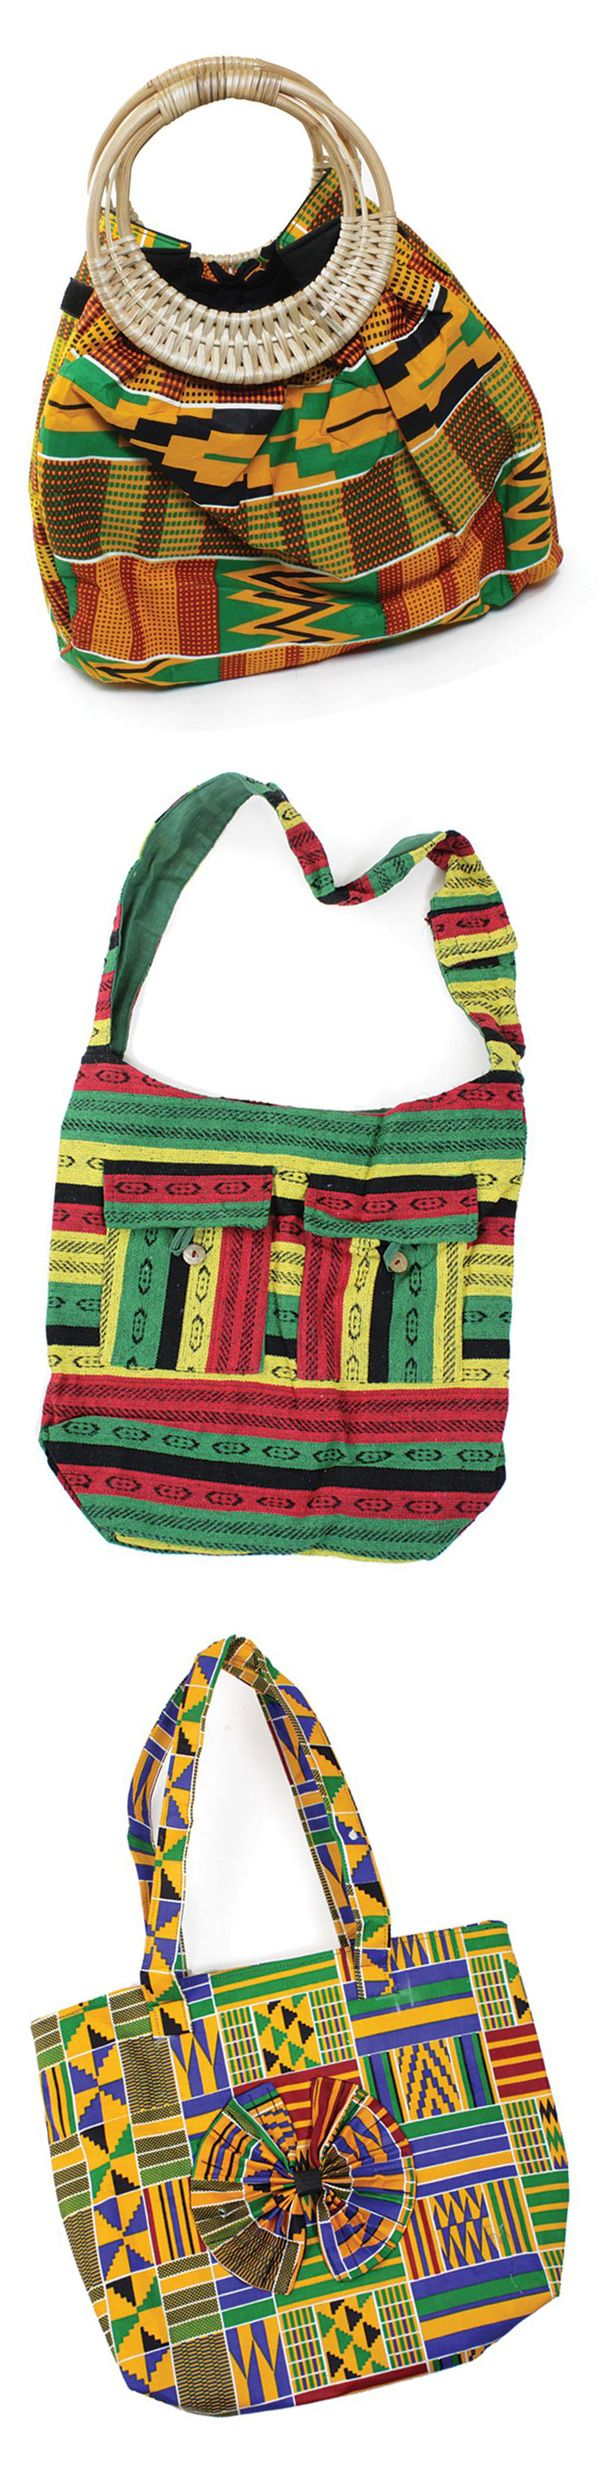 Traditional African Print Handbags - These beautiful African style purses are a perfect way to celebrate your love of African culture and history.  Each purse is made with traditional African fabrics that display the bold patterns and colors of Africa.  Everything from Kente cloth bags to Rasta style bags in traditional Jamaican colors.  Click to see all of the beautiful African handbags we have to offer!  #africa #african #handbag #purse #purses #bag #jamaican #rasta #kente #africanfashion…